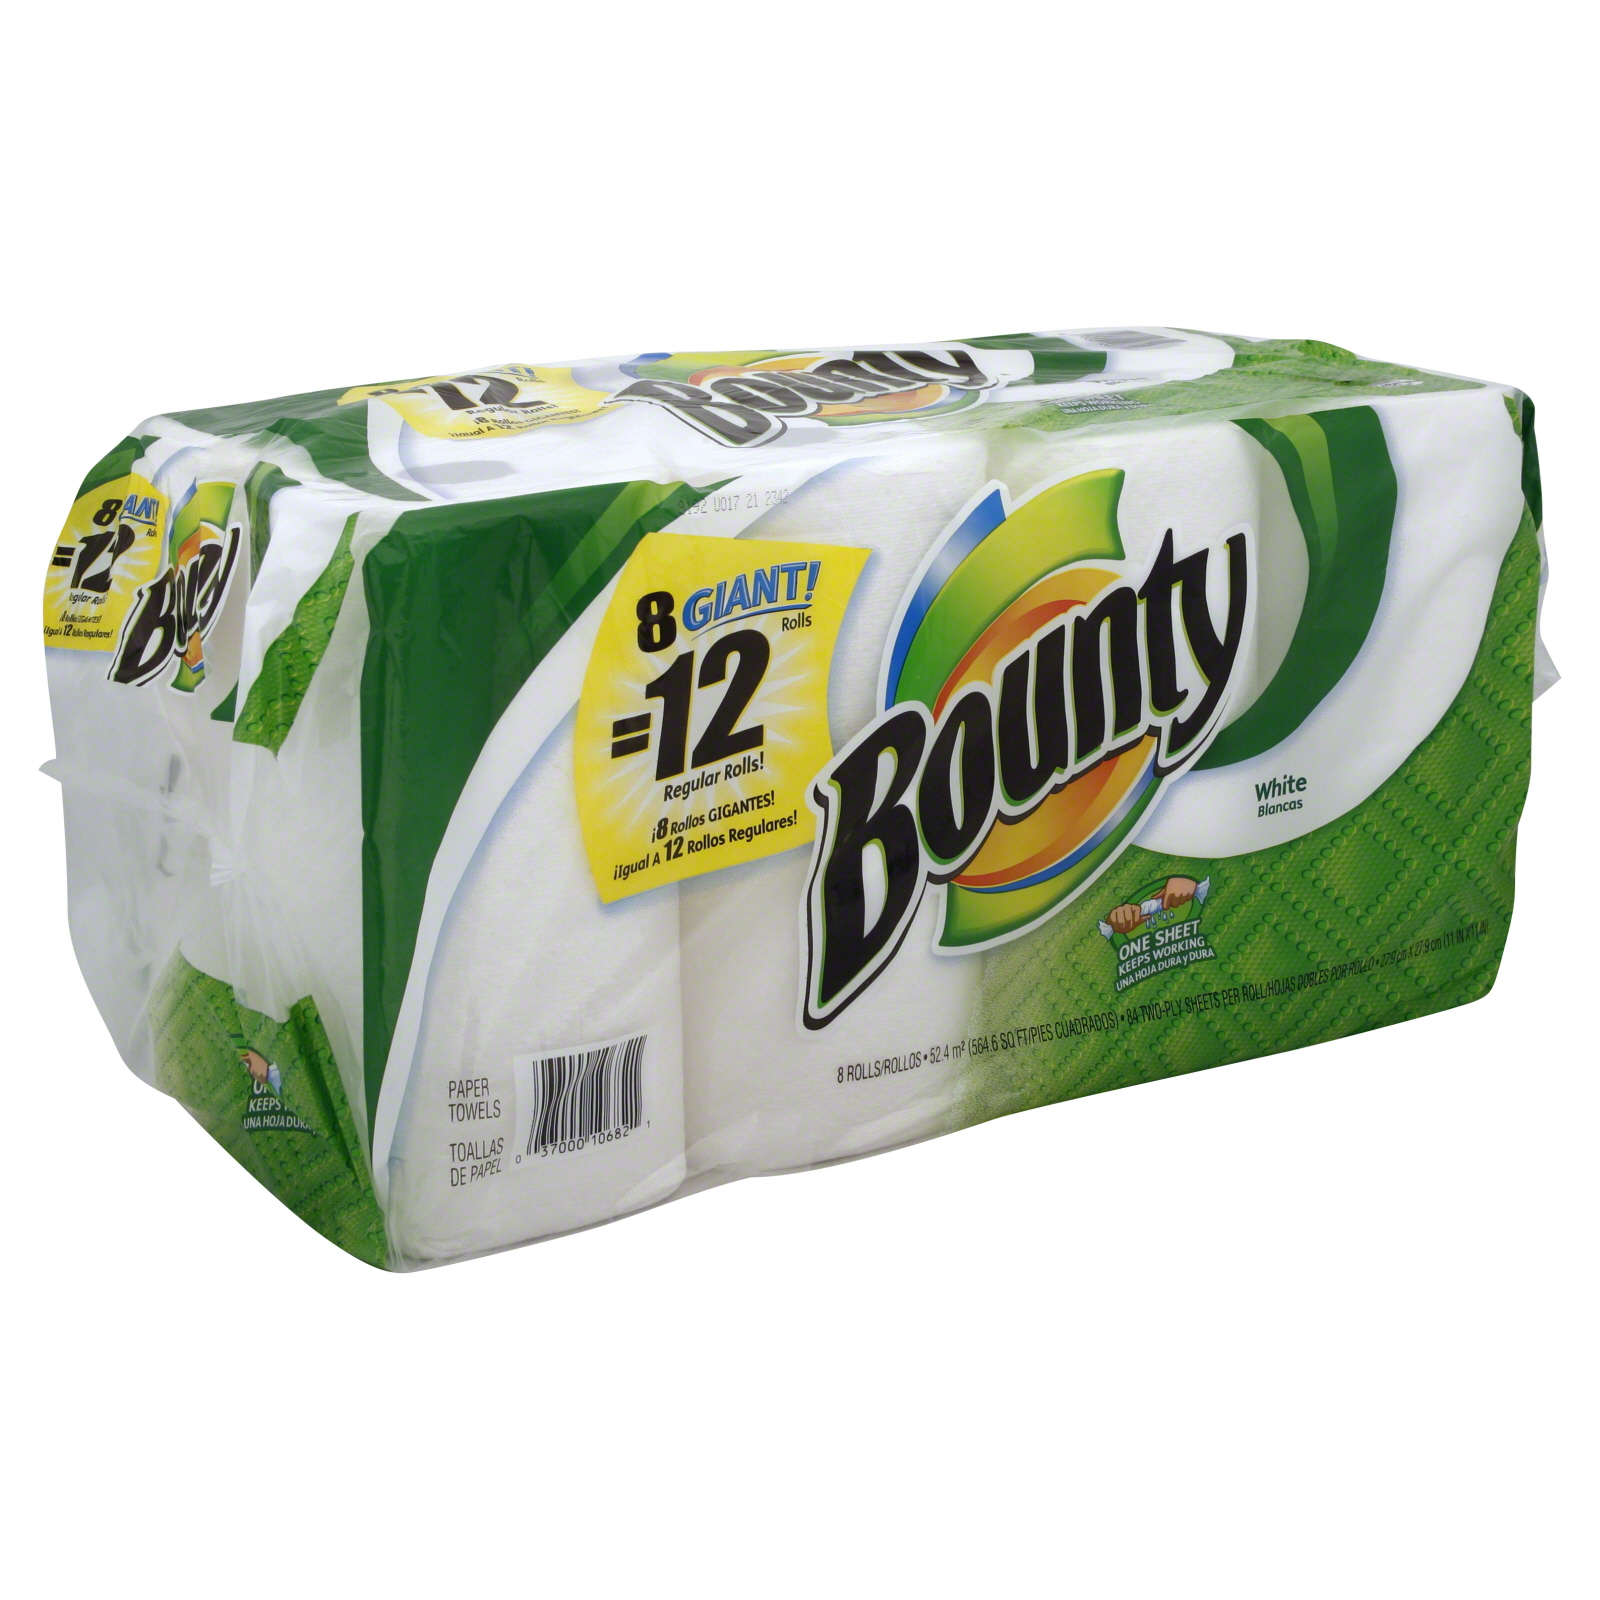 Paper Towels, Giant Rolls, White, Two Ply, 8 rolls                                                                               at mygofer.com